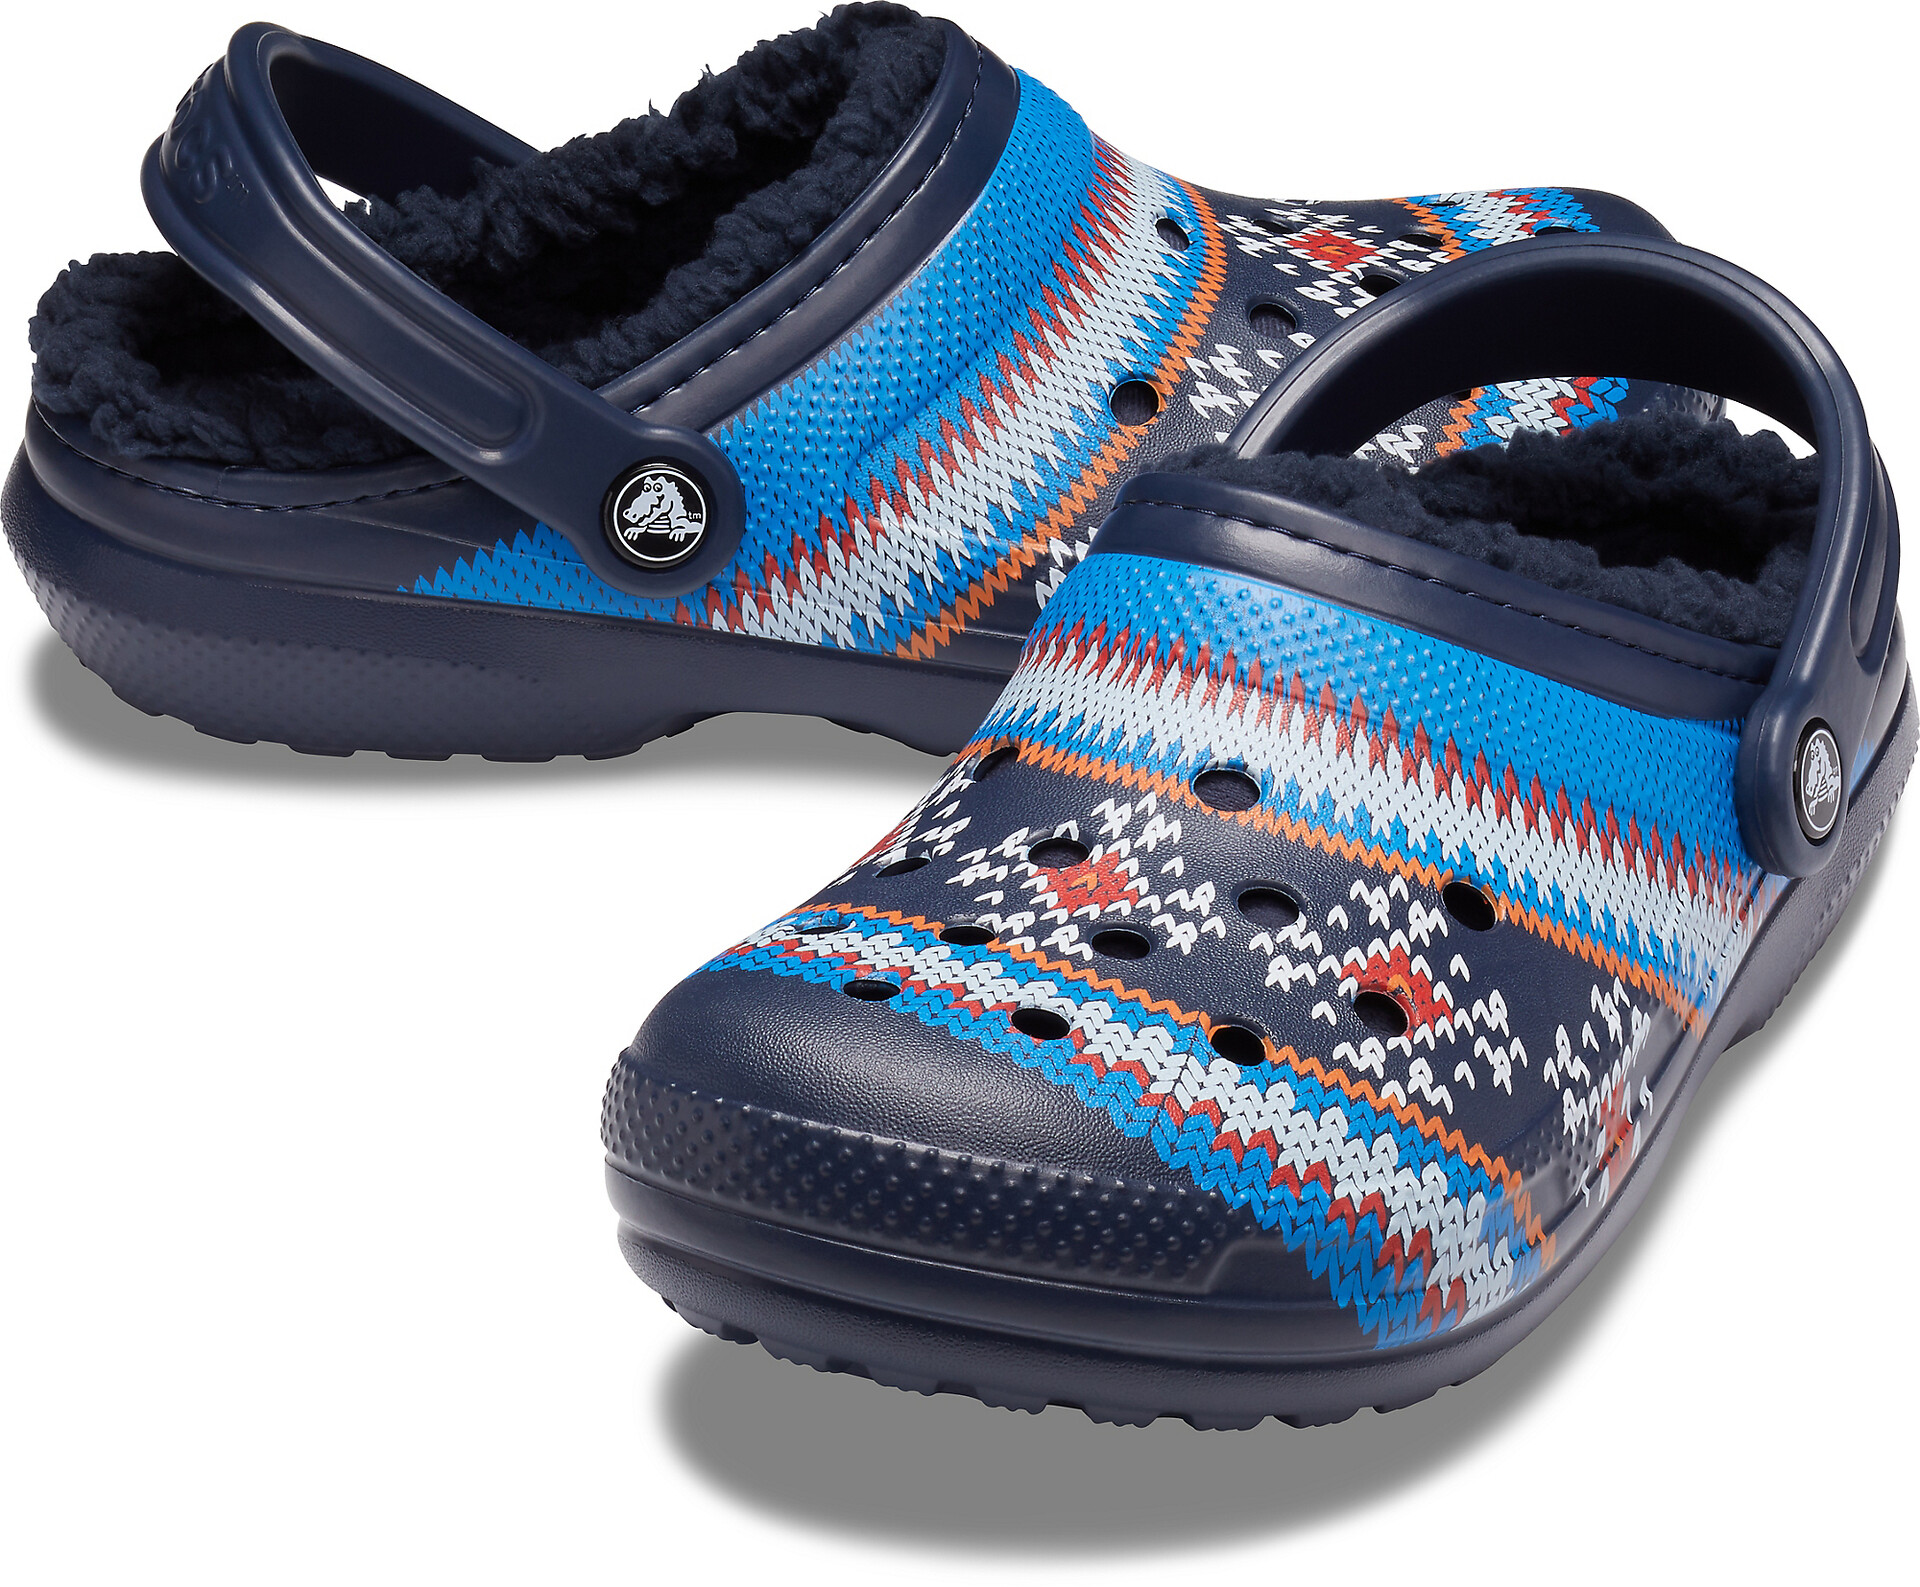 Crocs Classic Printed Lined Clogs zoccoli, navy su Addnature IaKuc